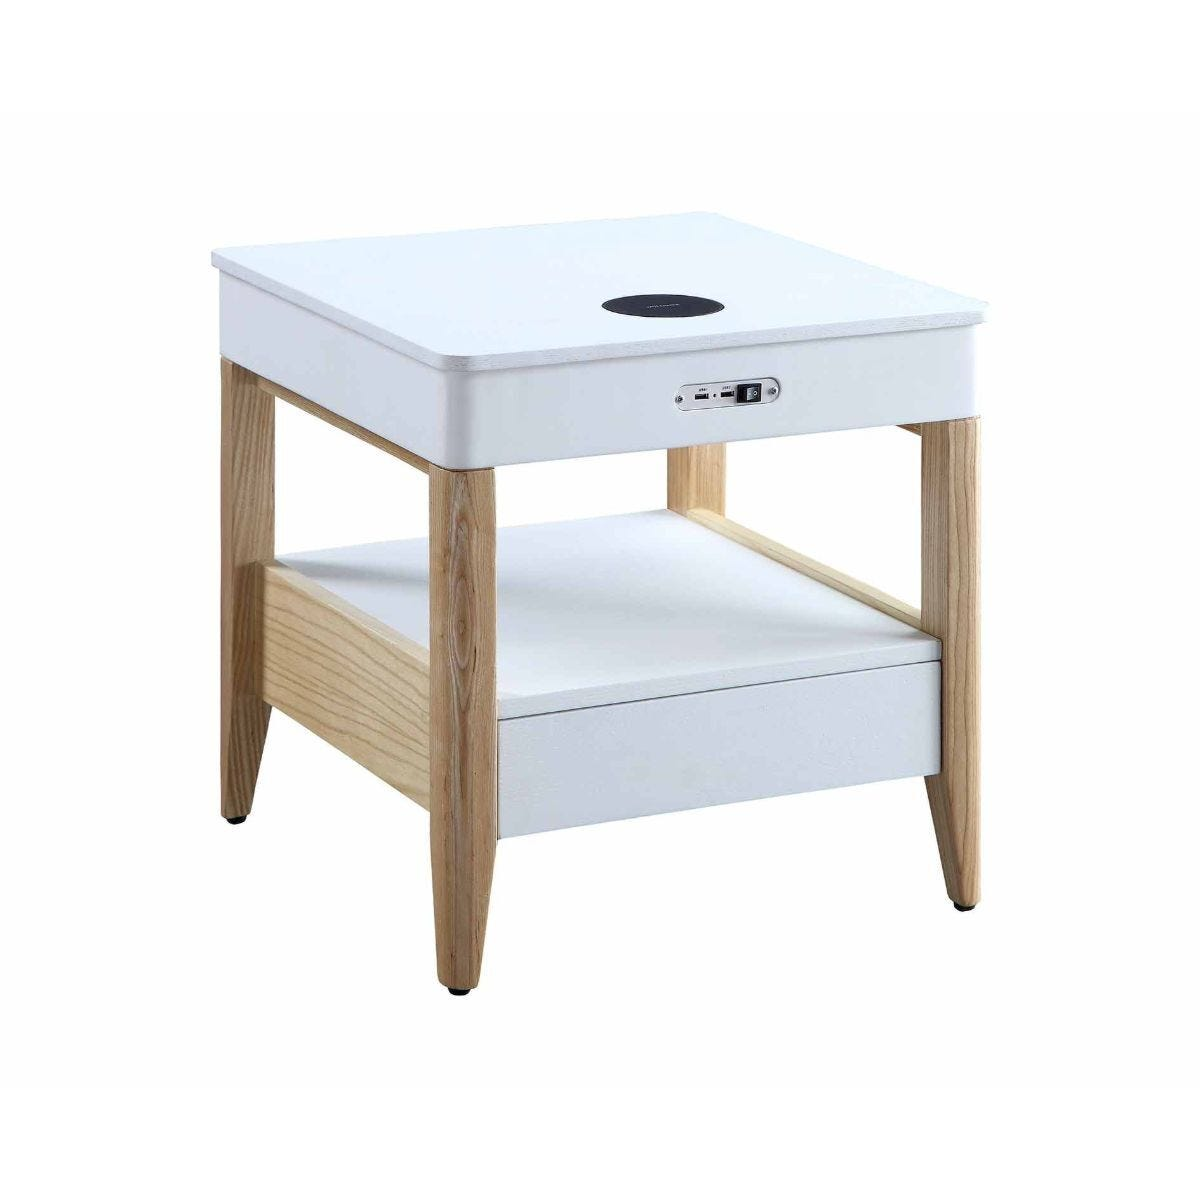 Jual San Francisco Smart Bedside Table with Bluetooth Speakers